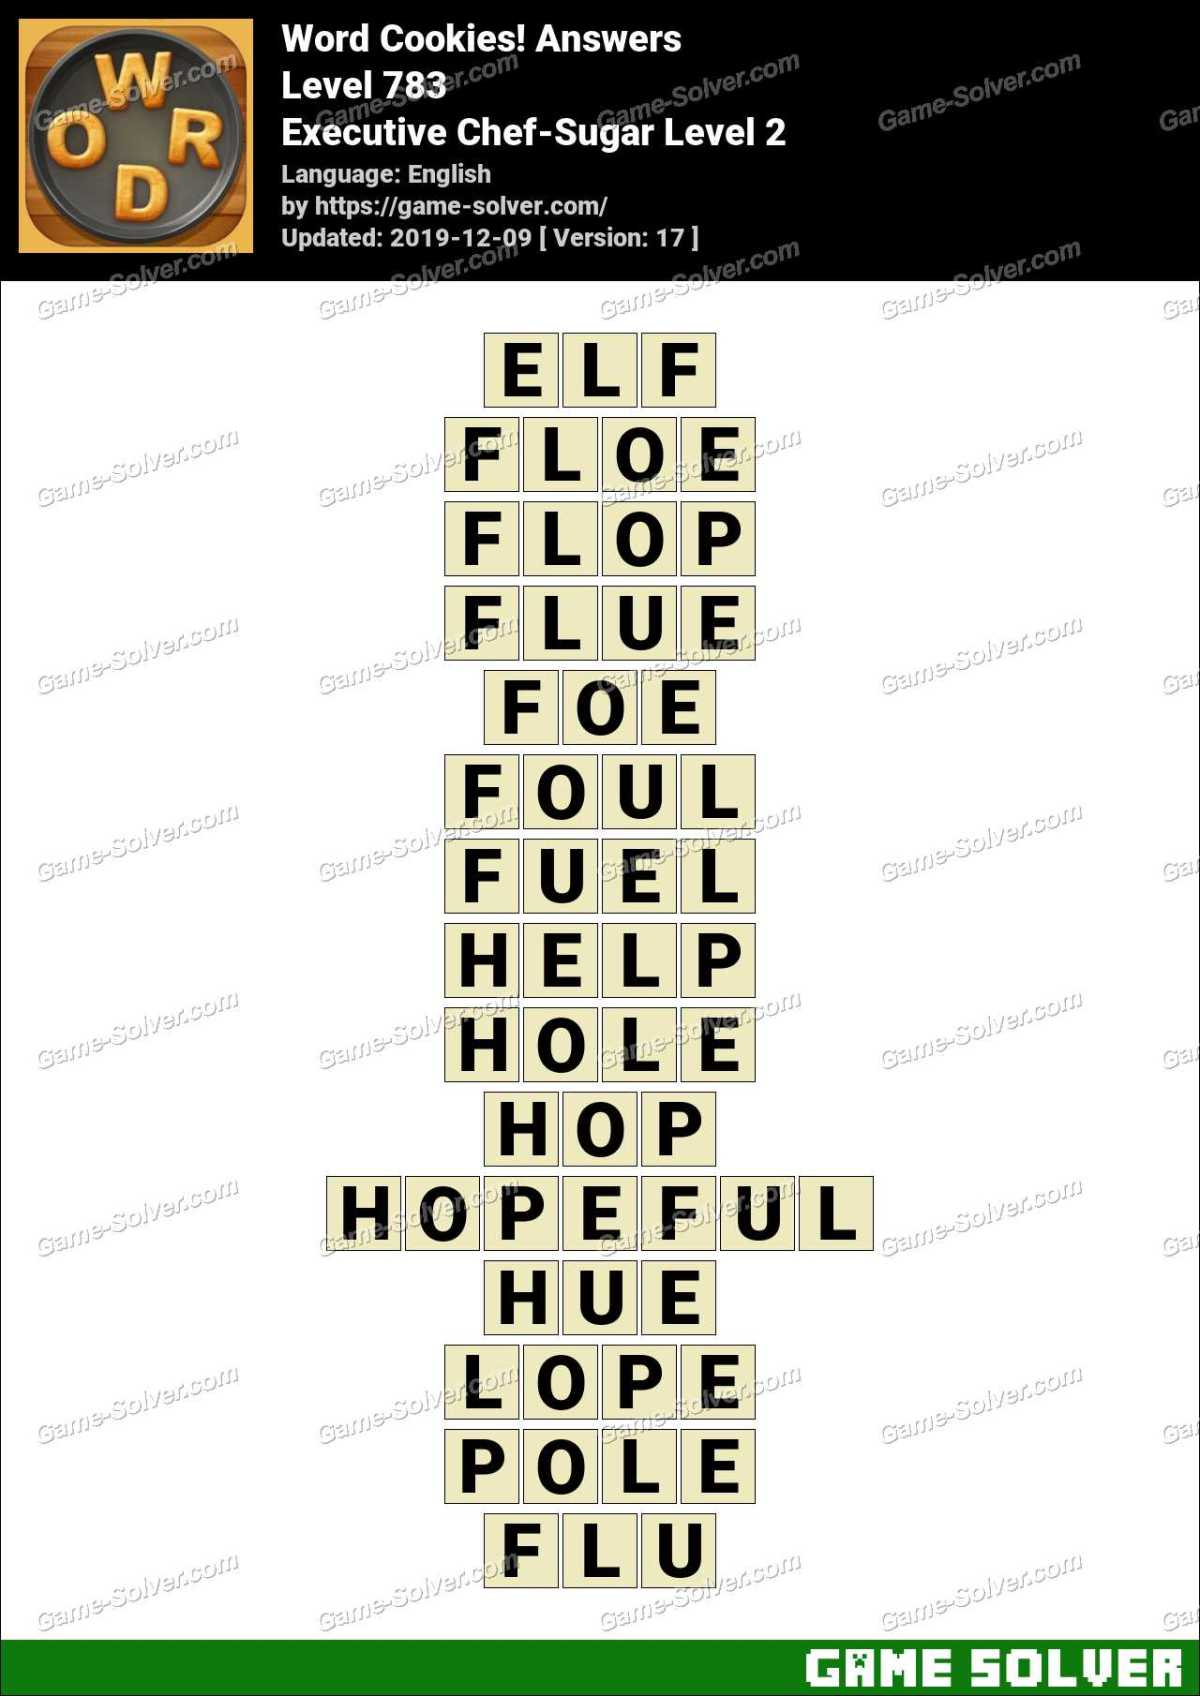 Word Cookies Executive Chef-Sugar Level 2 Answers